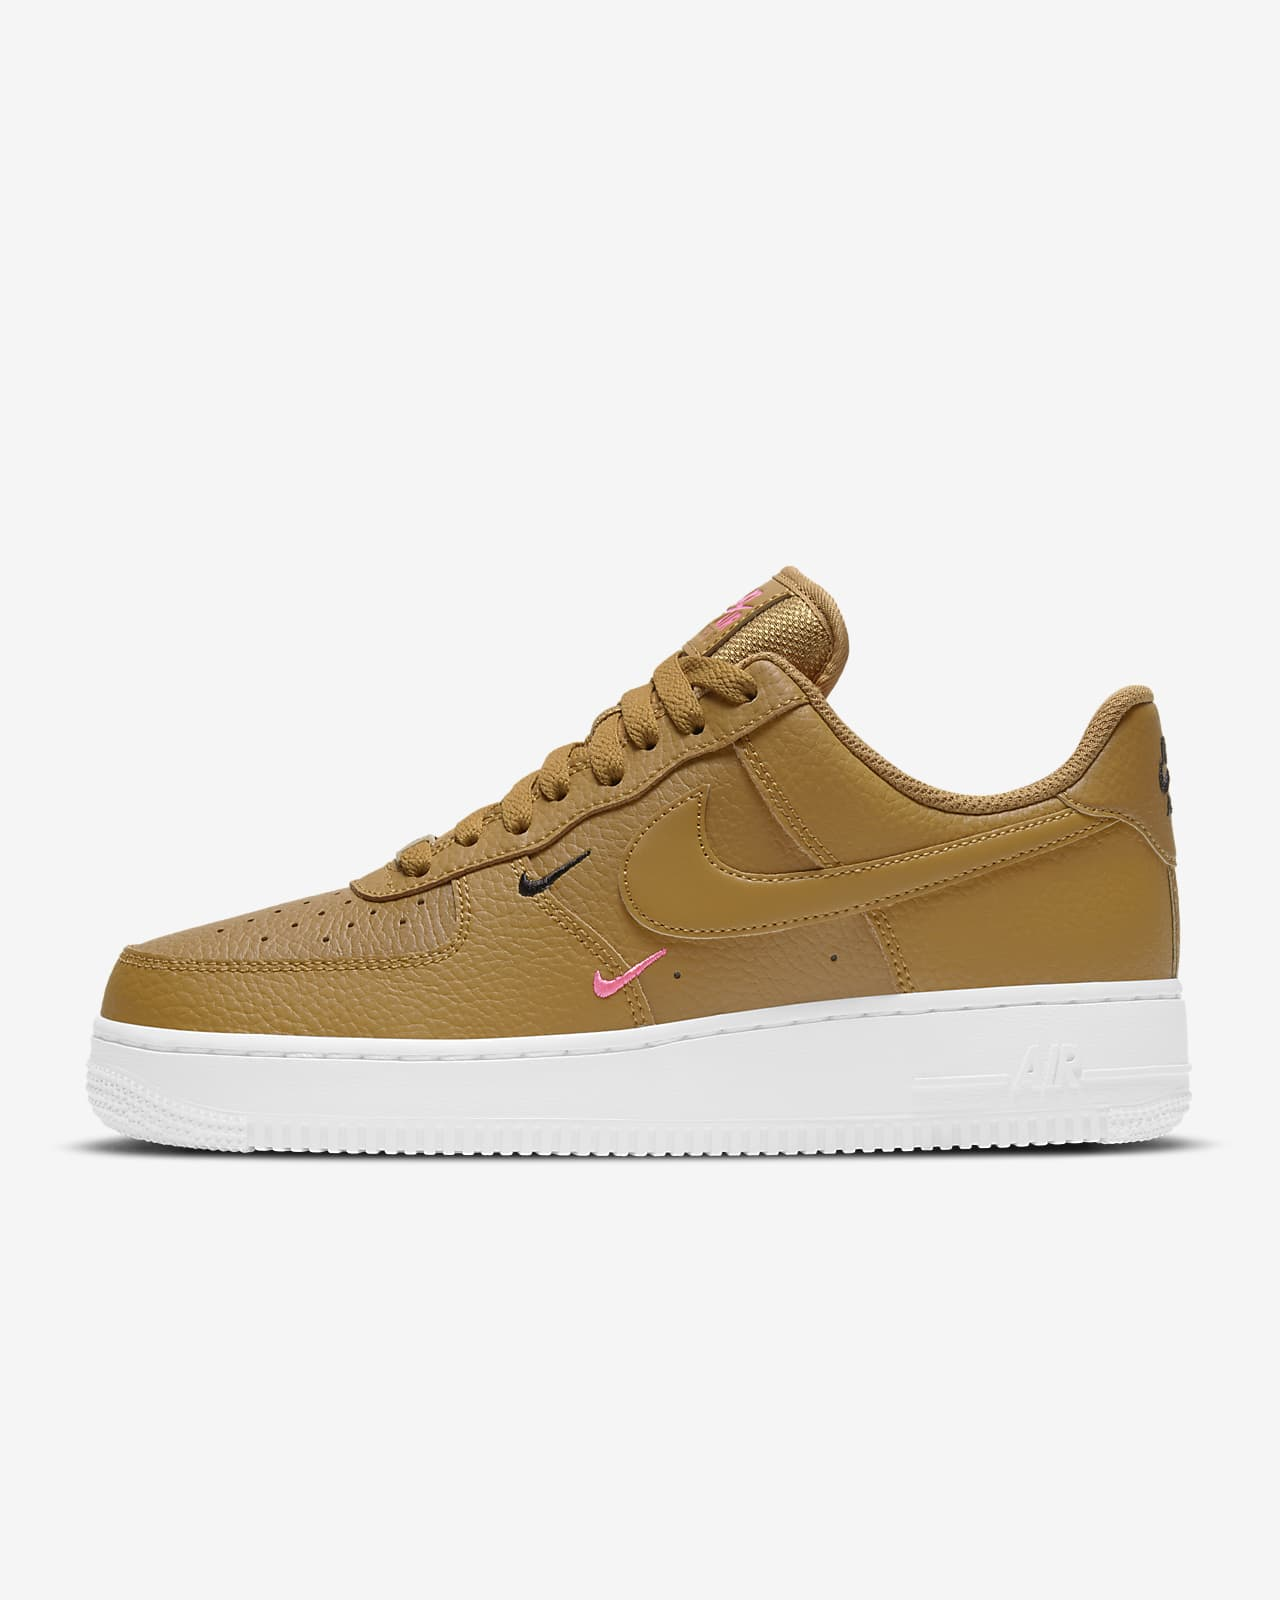 Chaussure Nike Air Force 1 '07 Essential pour Femme